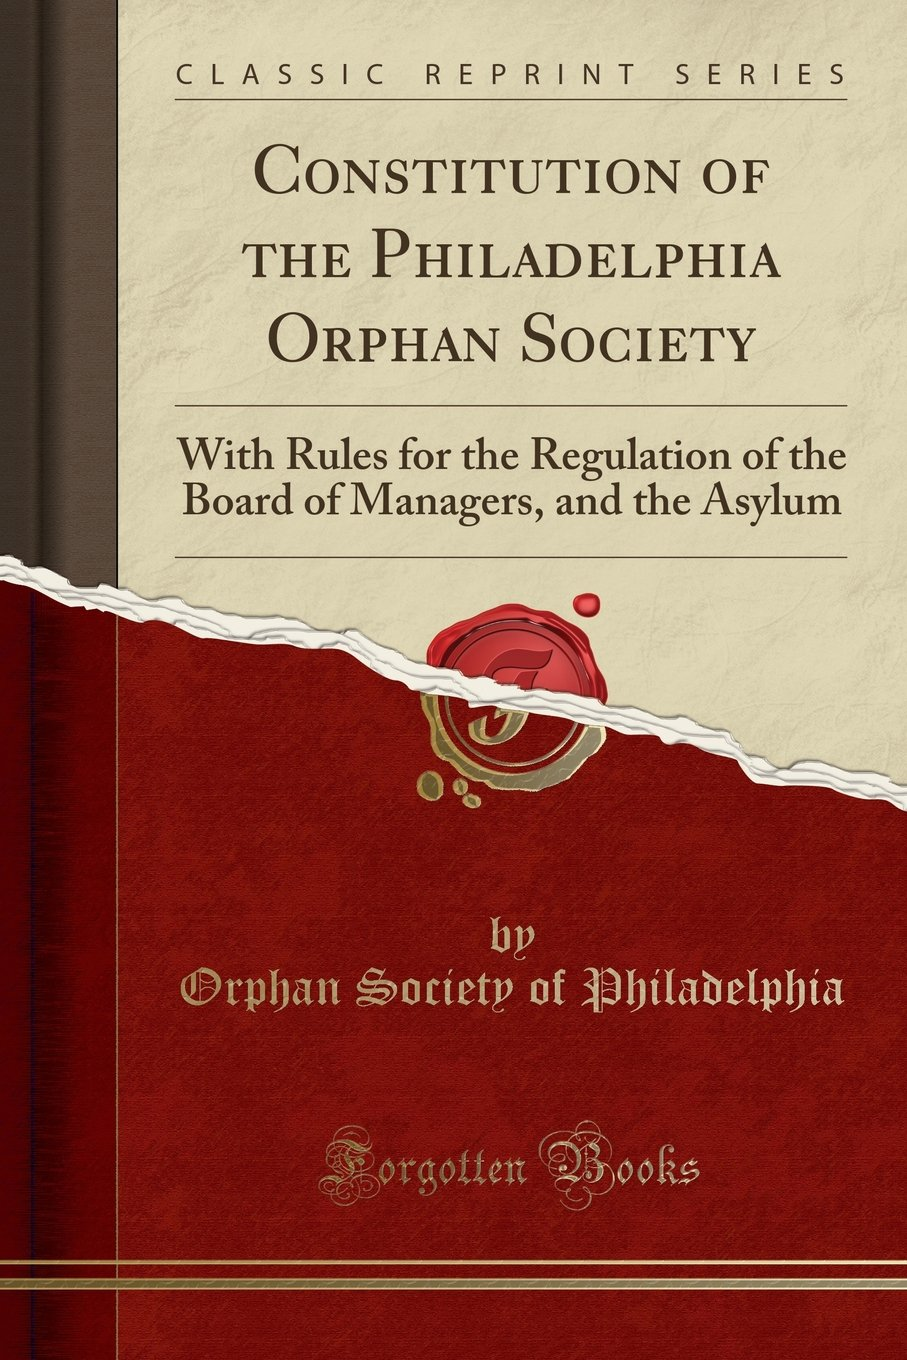 Download Constitution of the Philadelphia Orphan Society: With Rules for the Regulation of the Board of Managers, and the Asylum (Classic Reprint) pdf